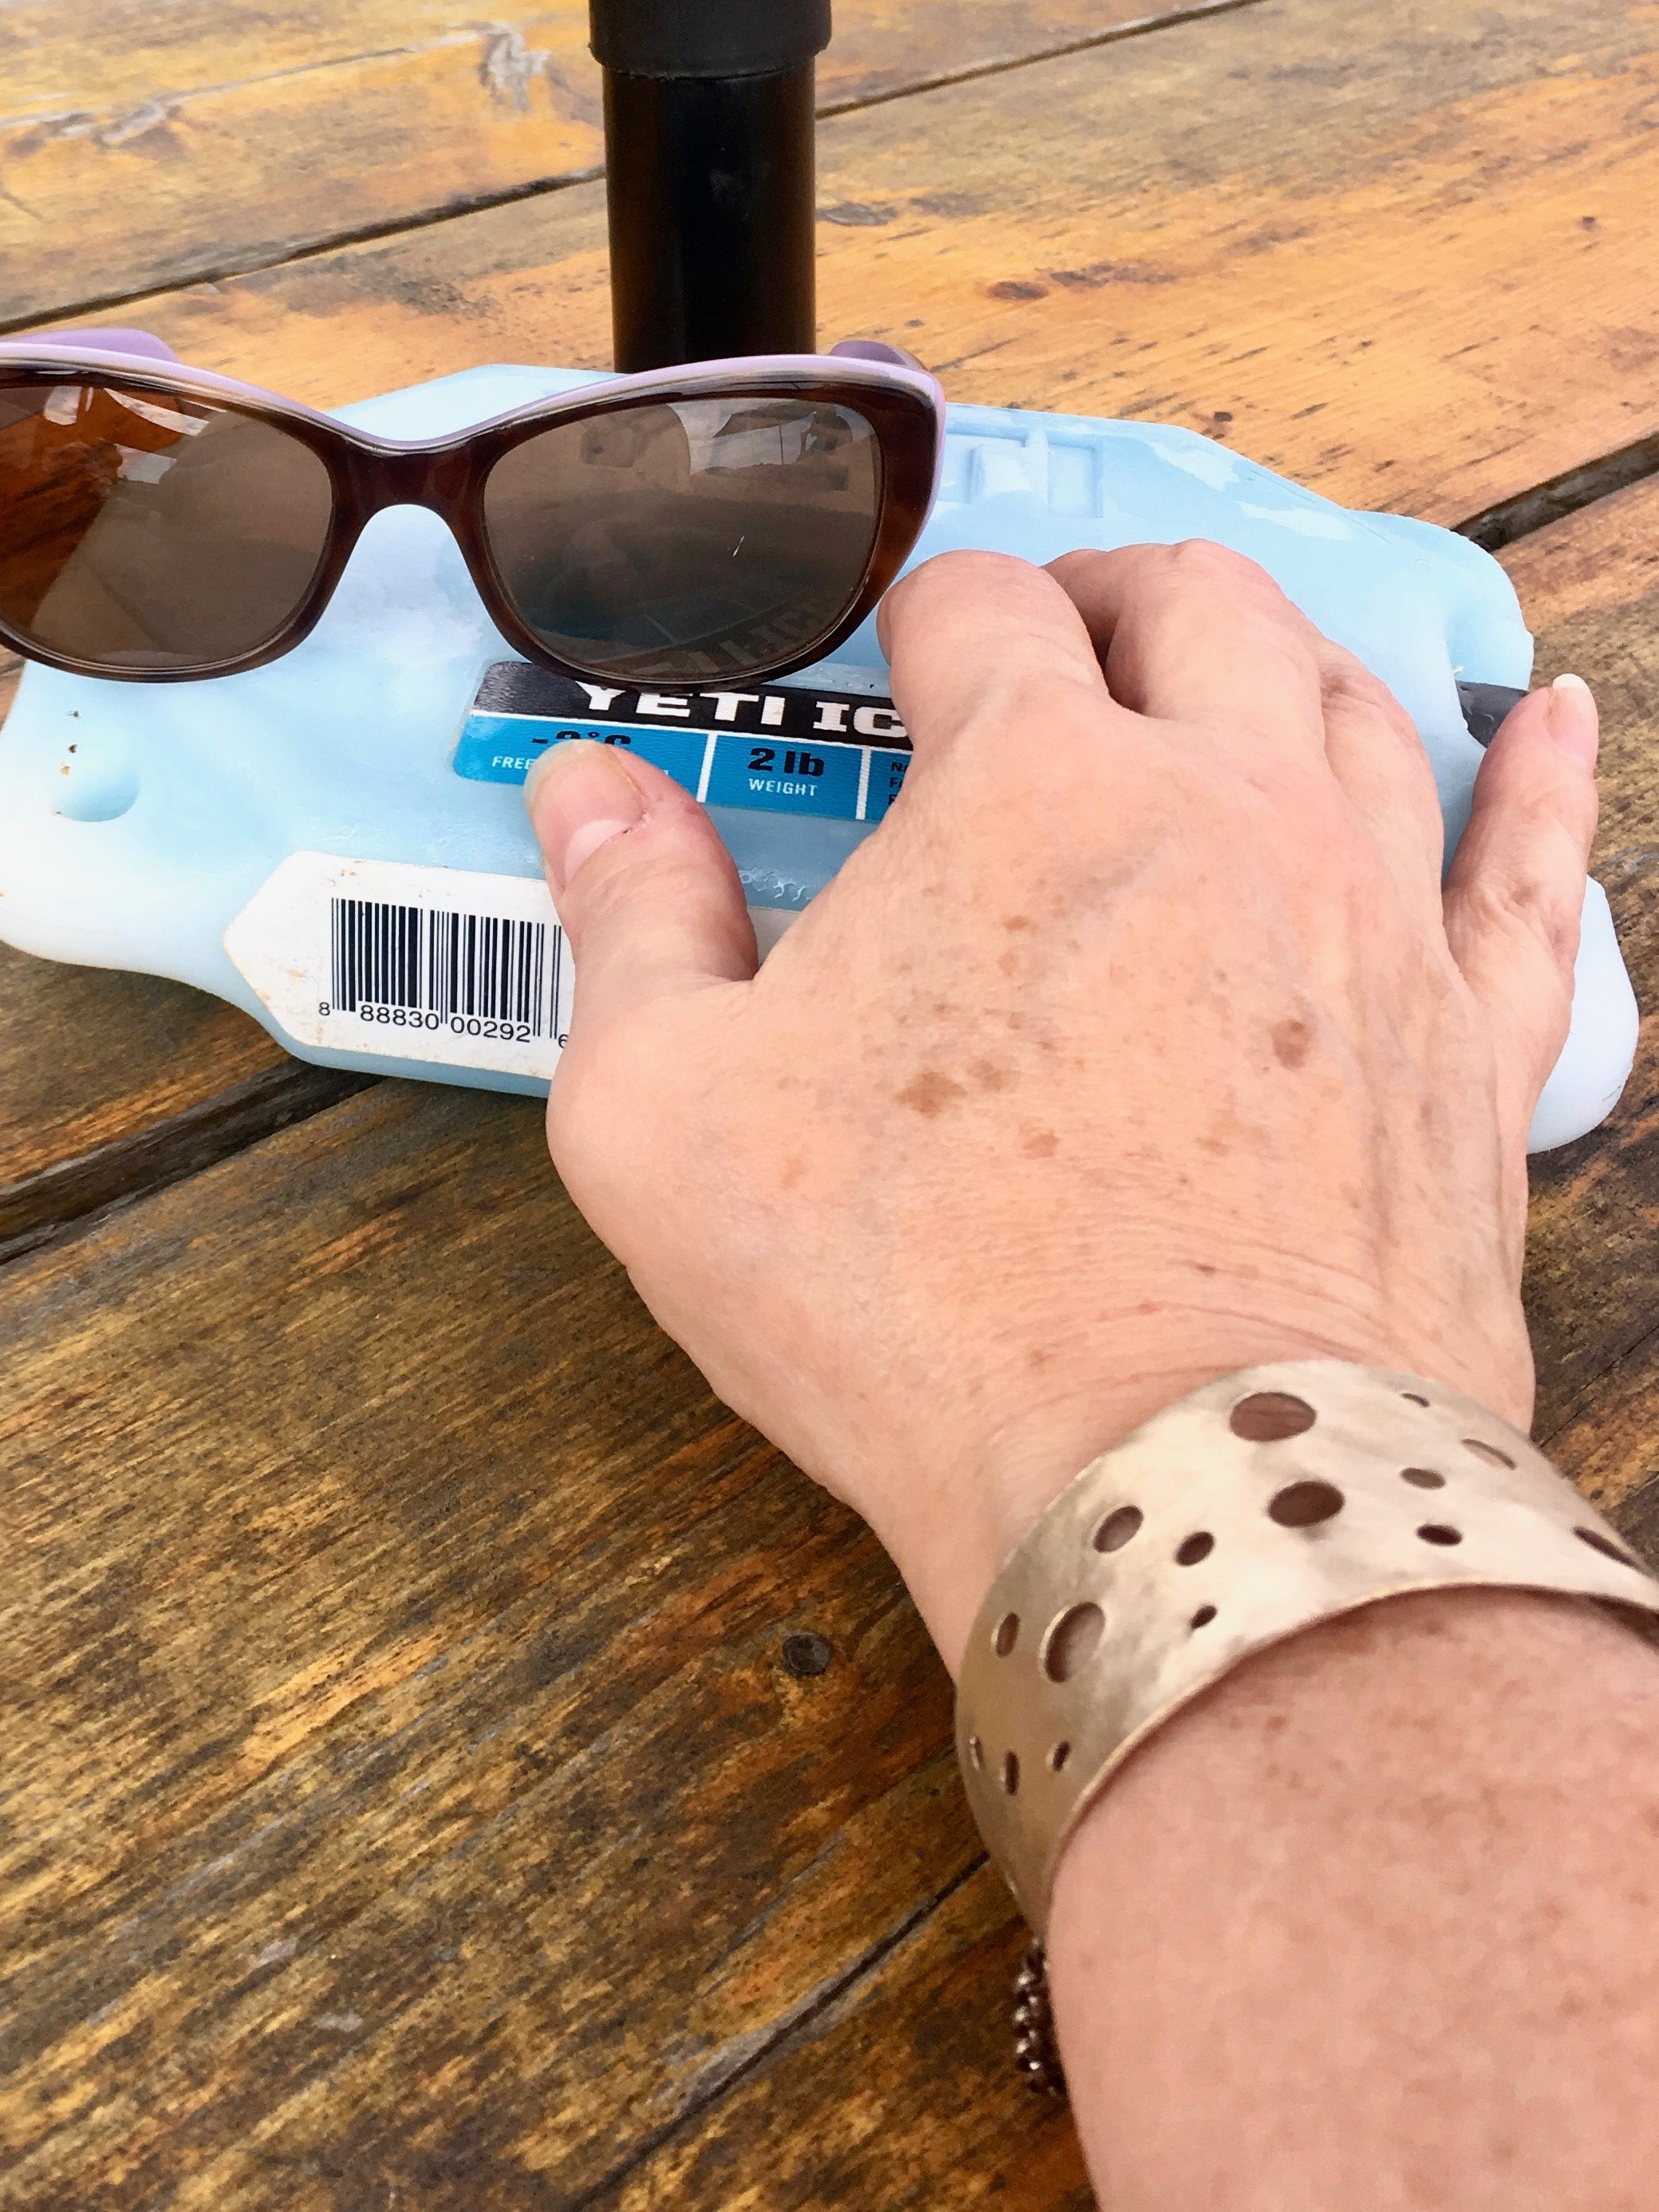 Bronze artisan made cuff with icepack and sunglasses